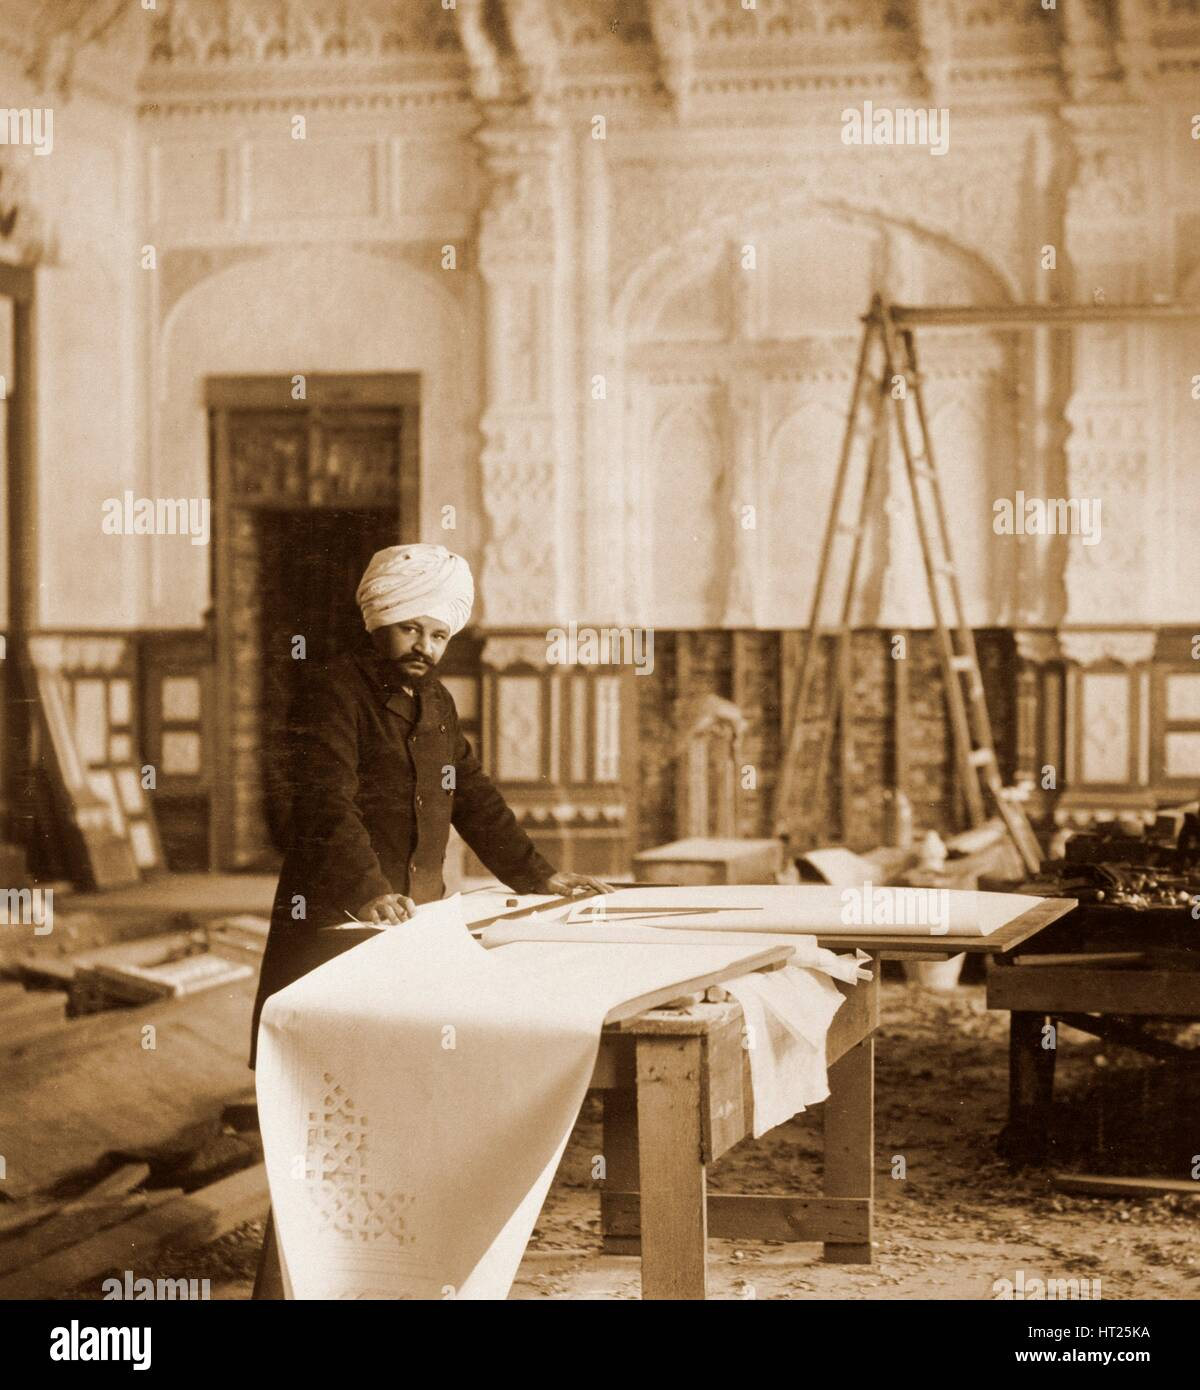 Bhai Ram Singh At Work In The Indian Room, Osborne House